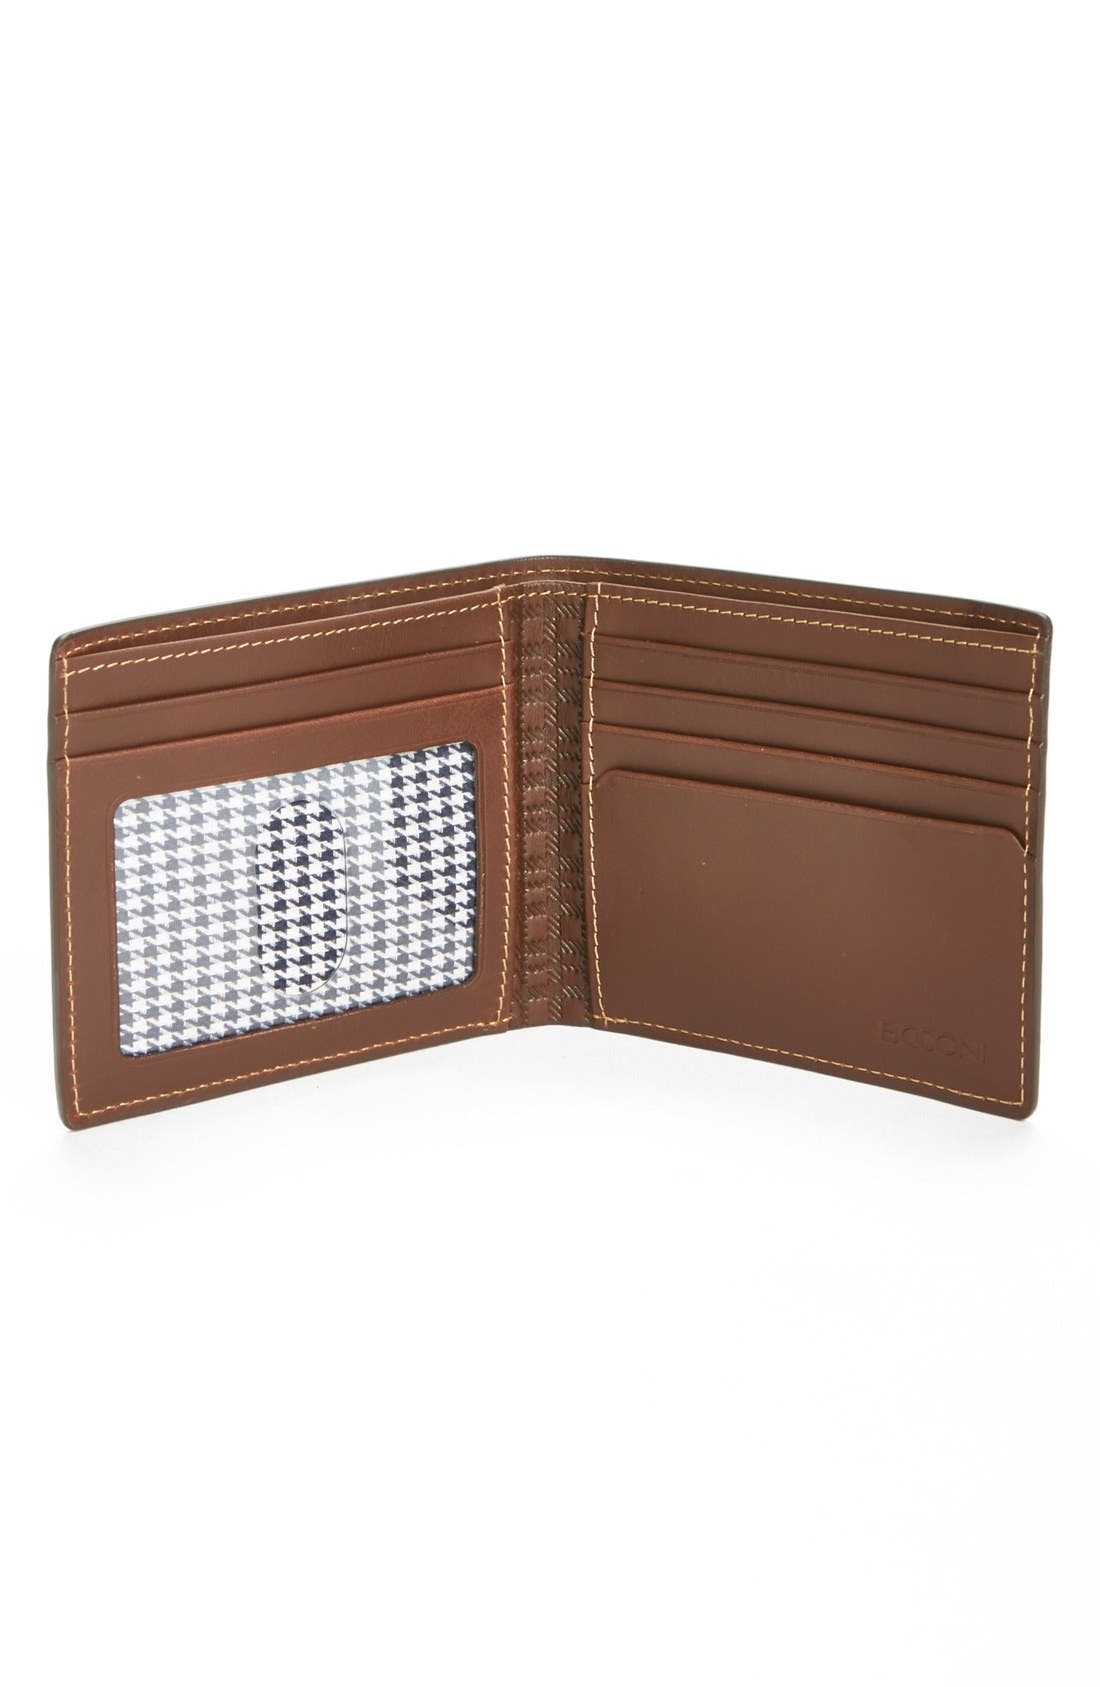 'Bryant' RFID Blocker Slimfold Wallet,                             Alternate thumbnail 6, color,